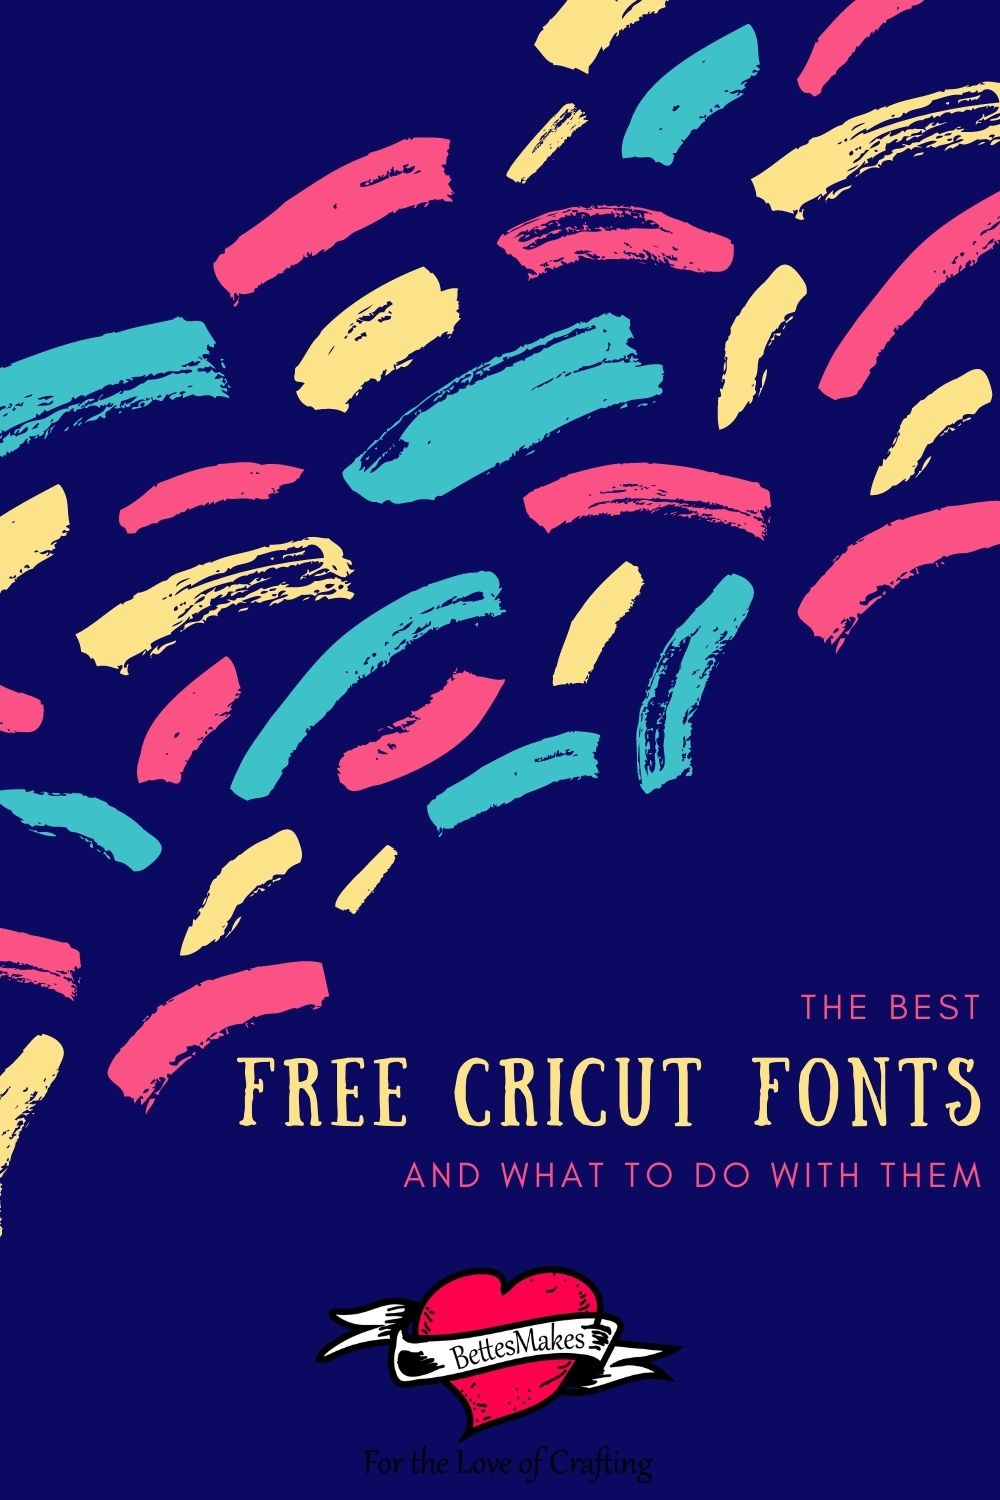 The Best free Cricut fonts and what to do with them